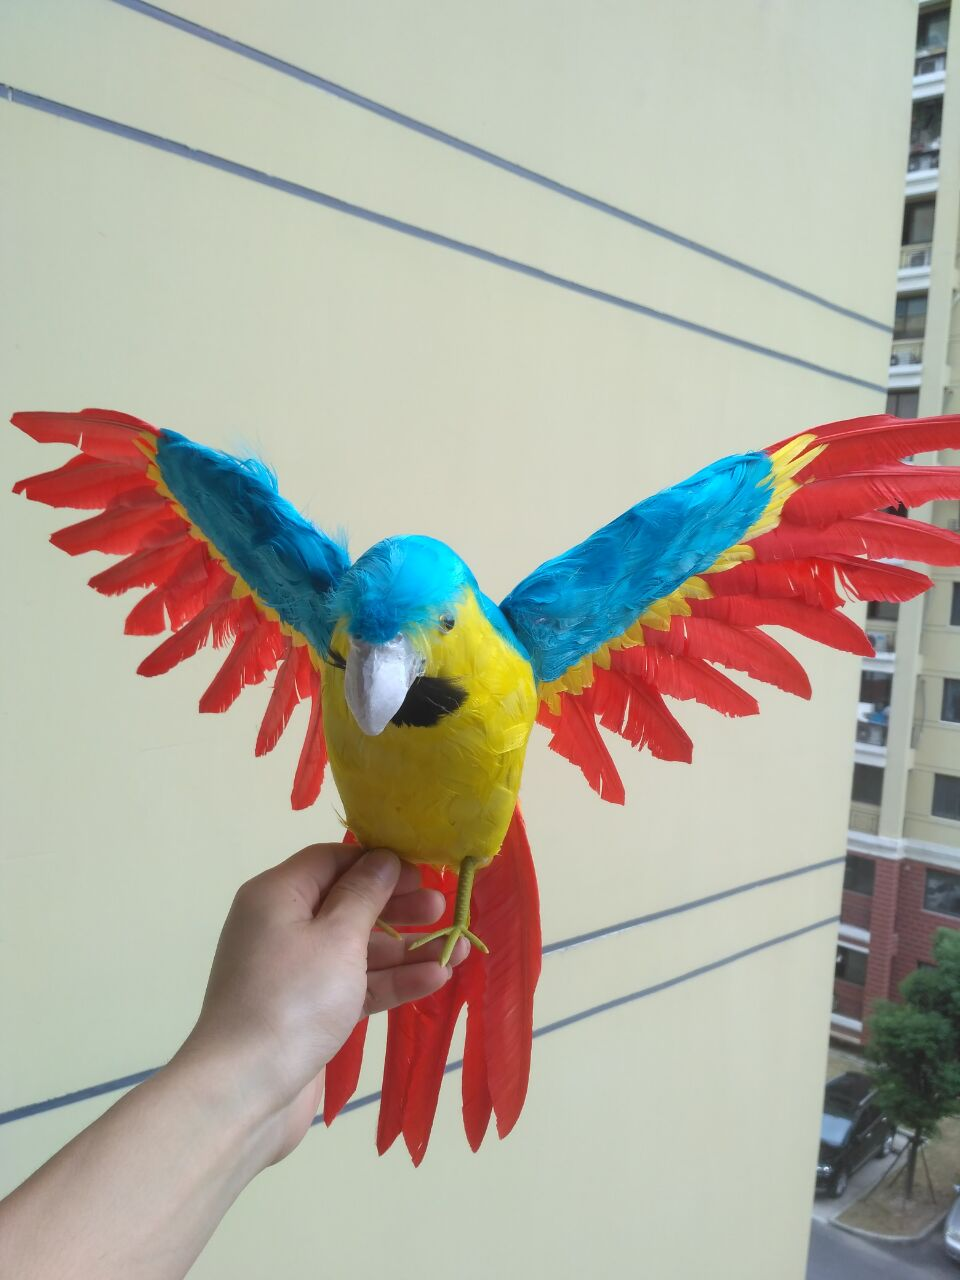 big simulation blue&yellow&red parrot toy polyethylene&furs wings parrot model gift about 60x45cm 1466